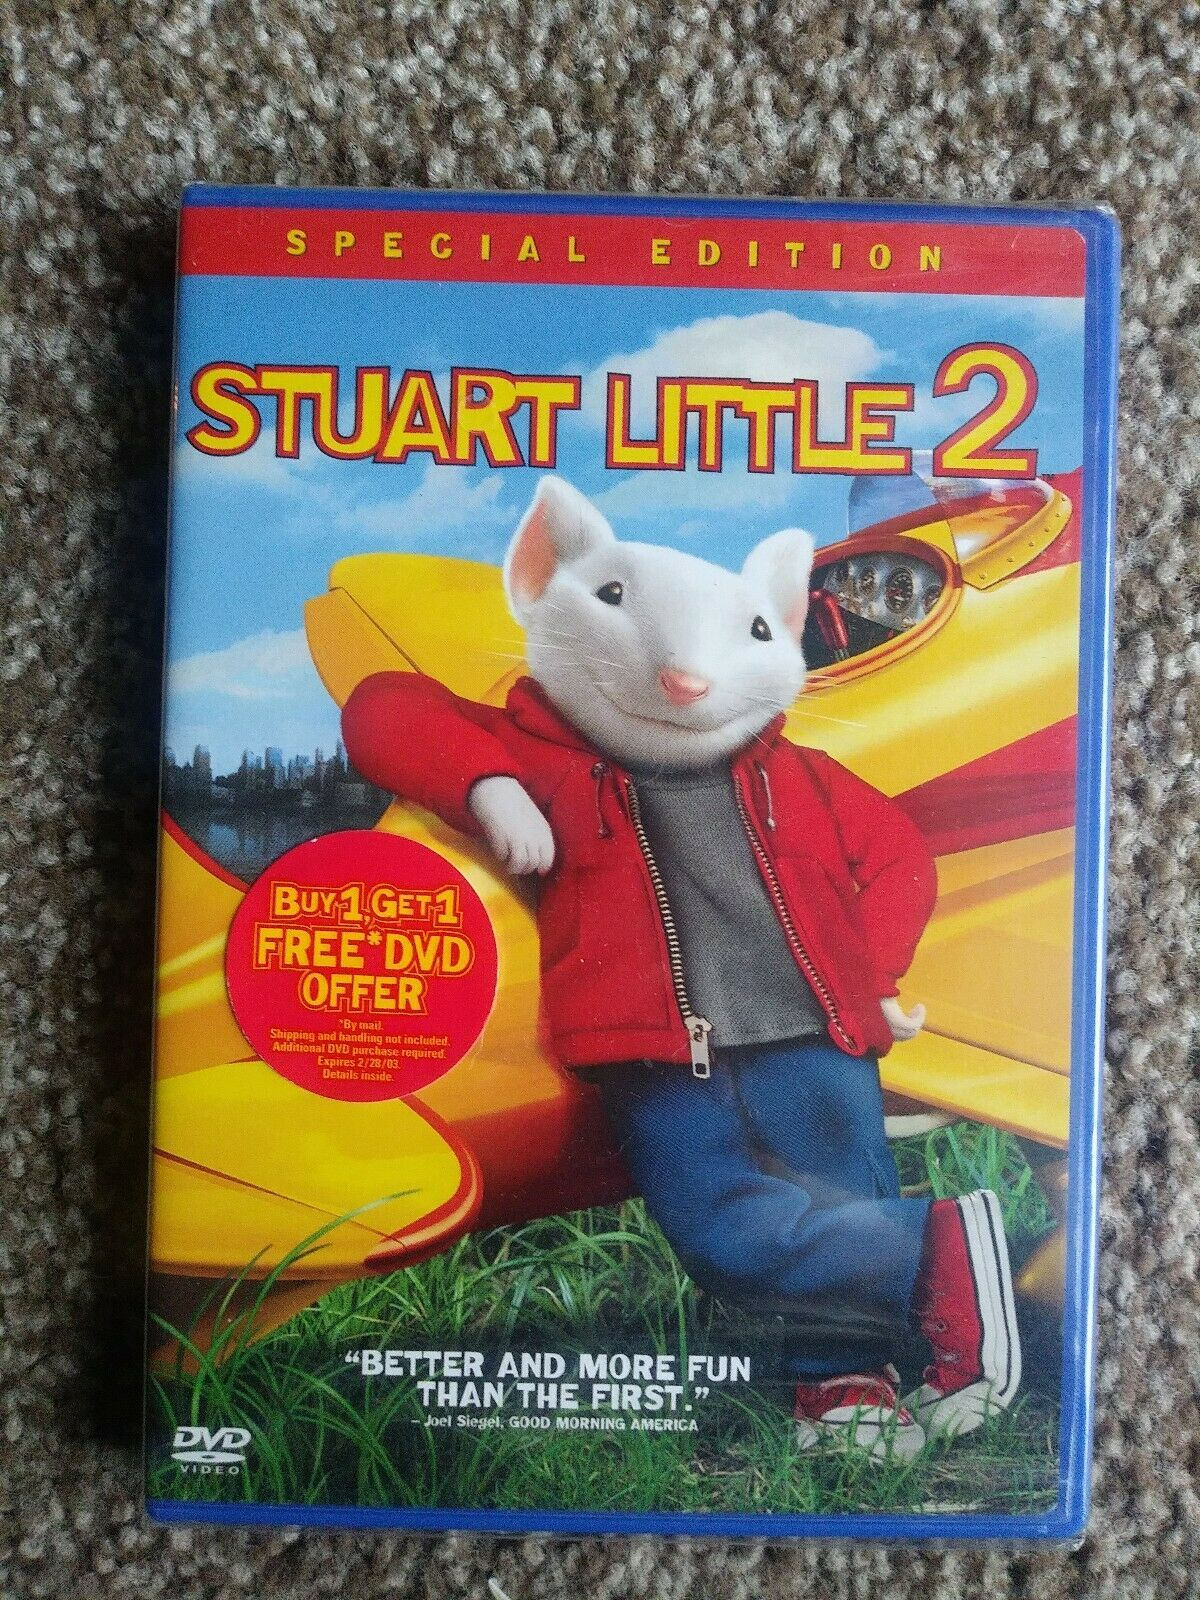 Primary image for STUART LITTLE 2 DVD Columbia Pictures PG Special Edition